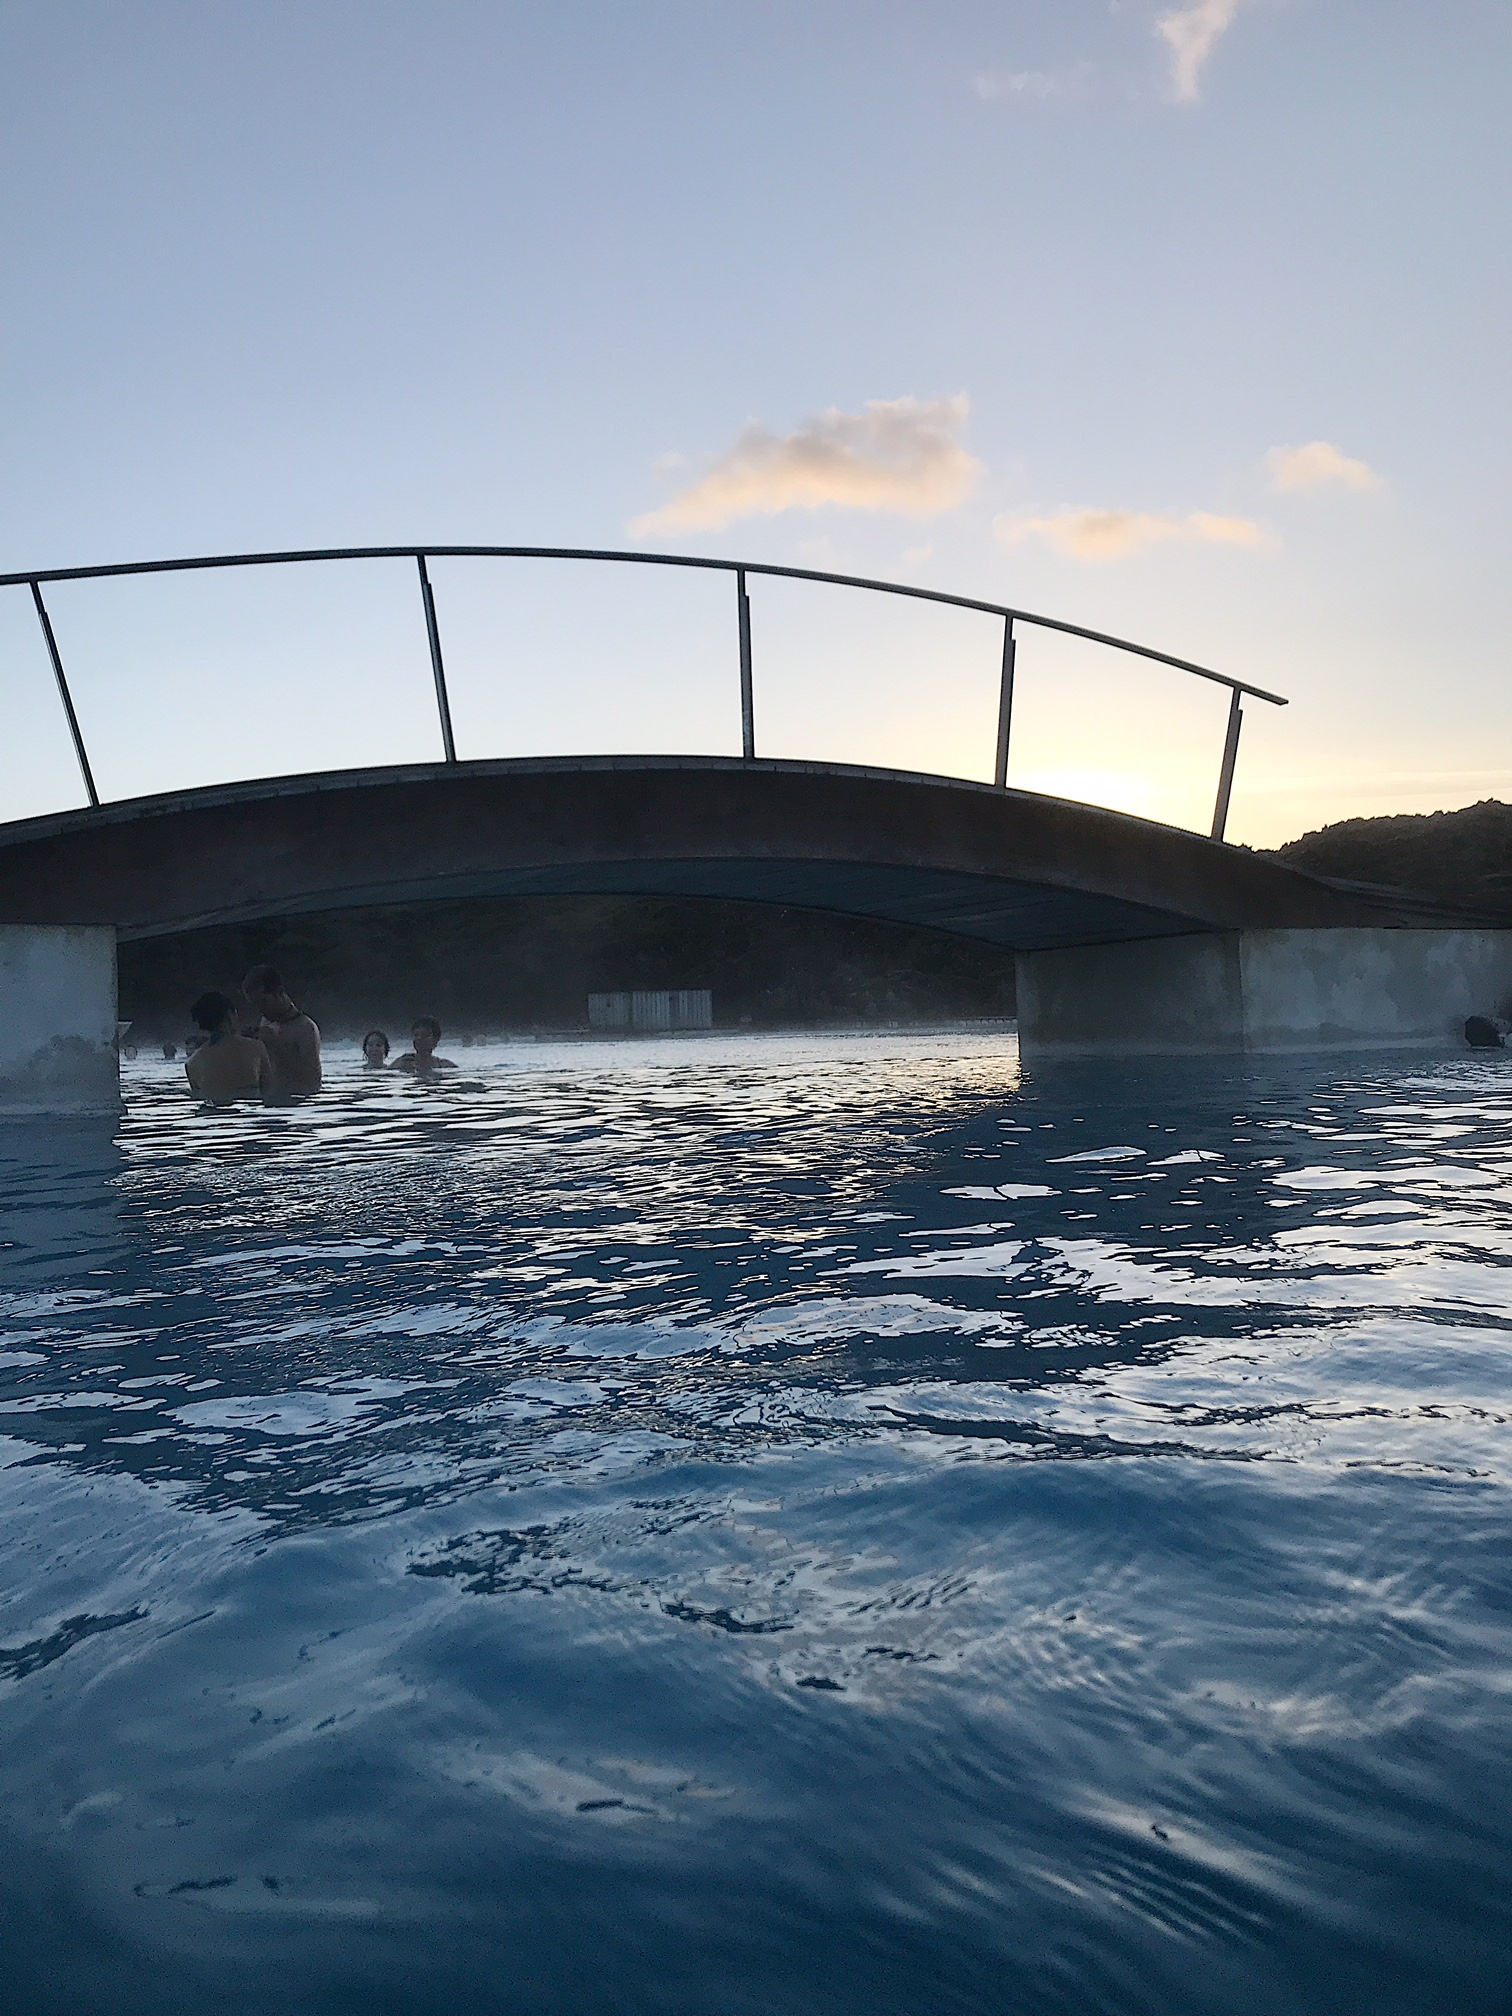 The was the one thing I was most excited about doing in Iceland and we spent the entire day in the Blue Lagoon! Absolutely gorgeous, we opted in for the VIP package with complimentary extras like robes, beers and mud masks